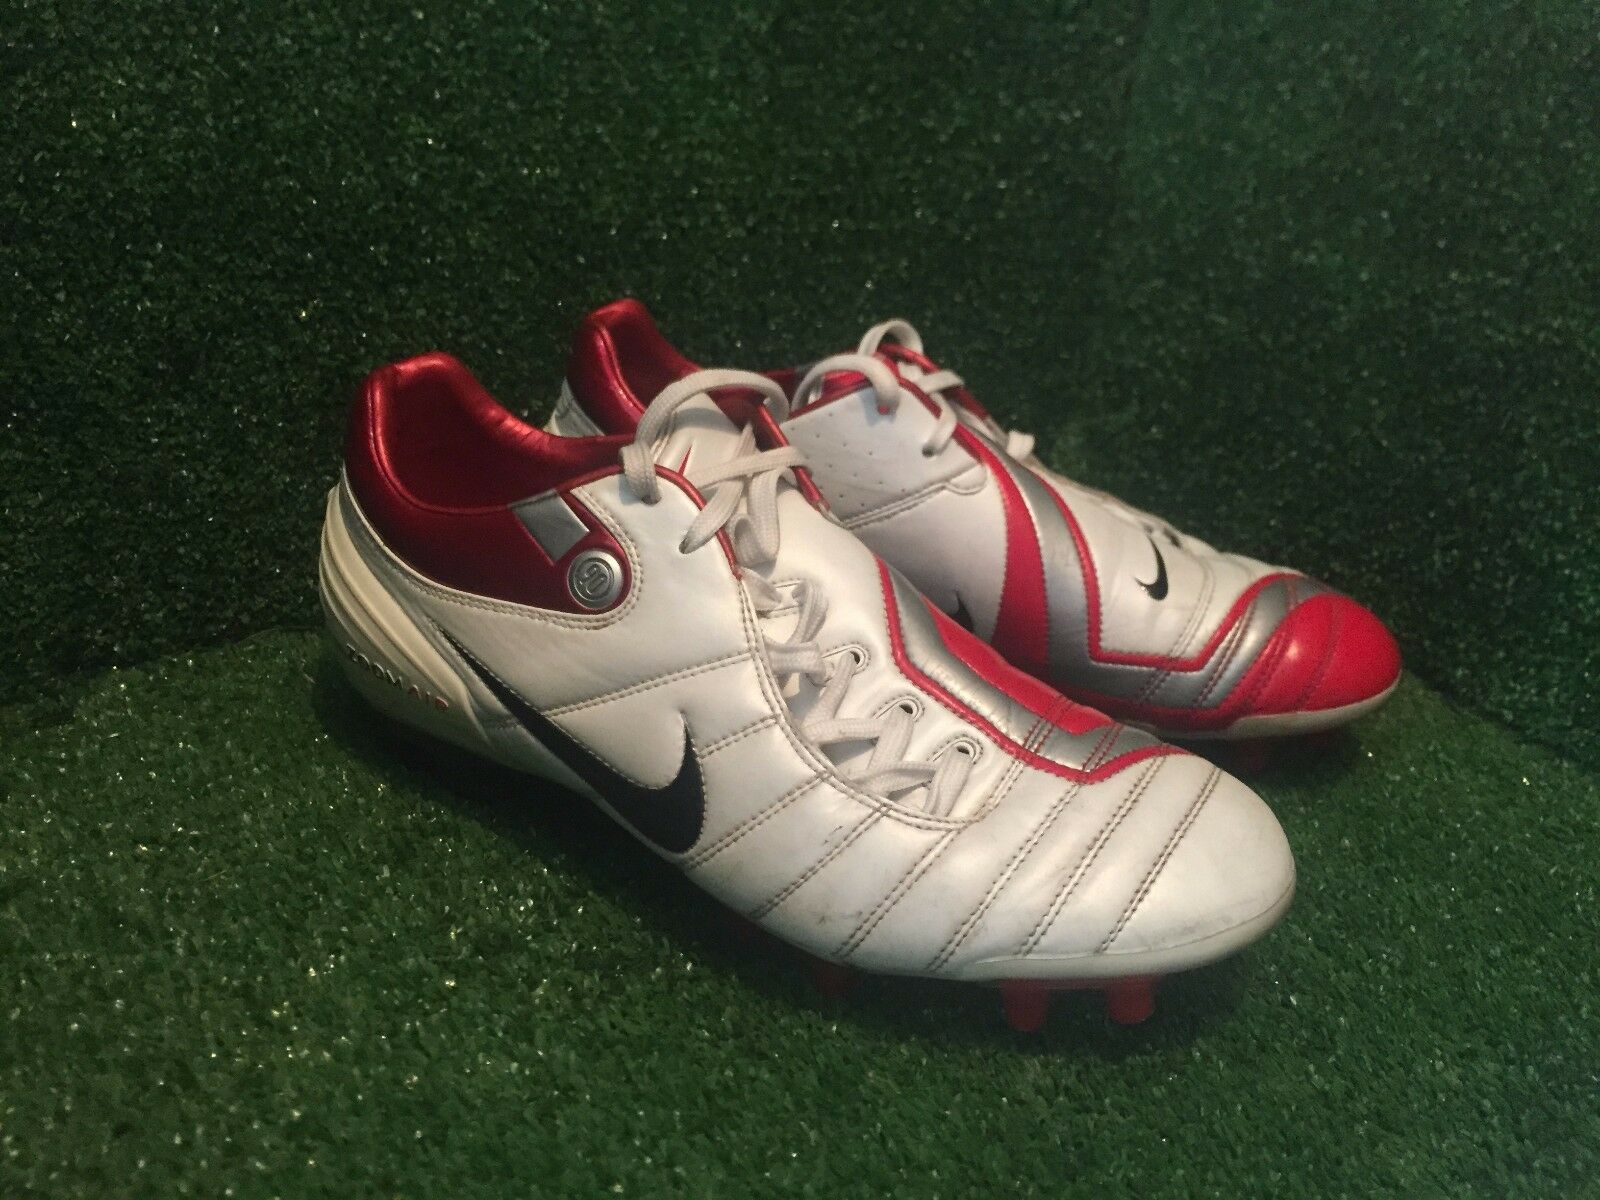 NIKE AIR ZOOM TOTAL 90 I FG SUPREMACY FOOTBALL CLEATS 8,5 7,5 42